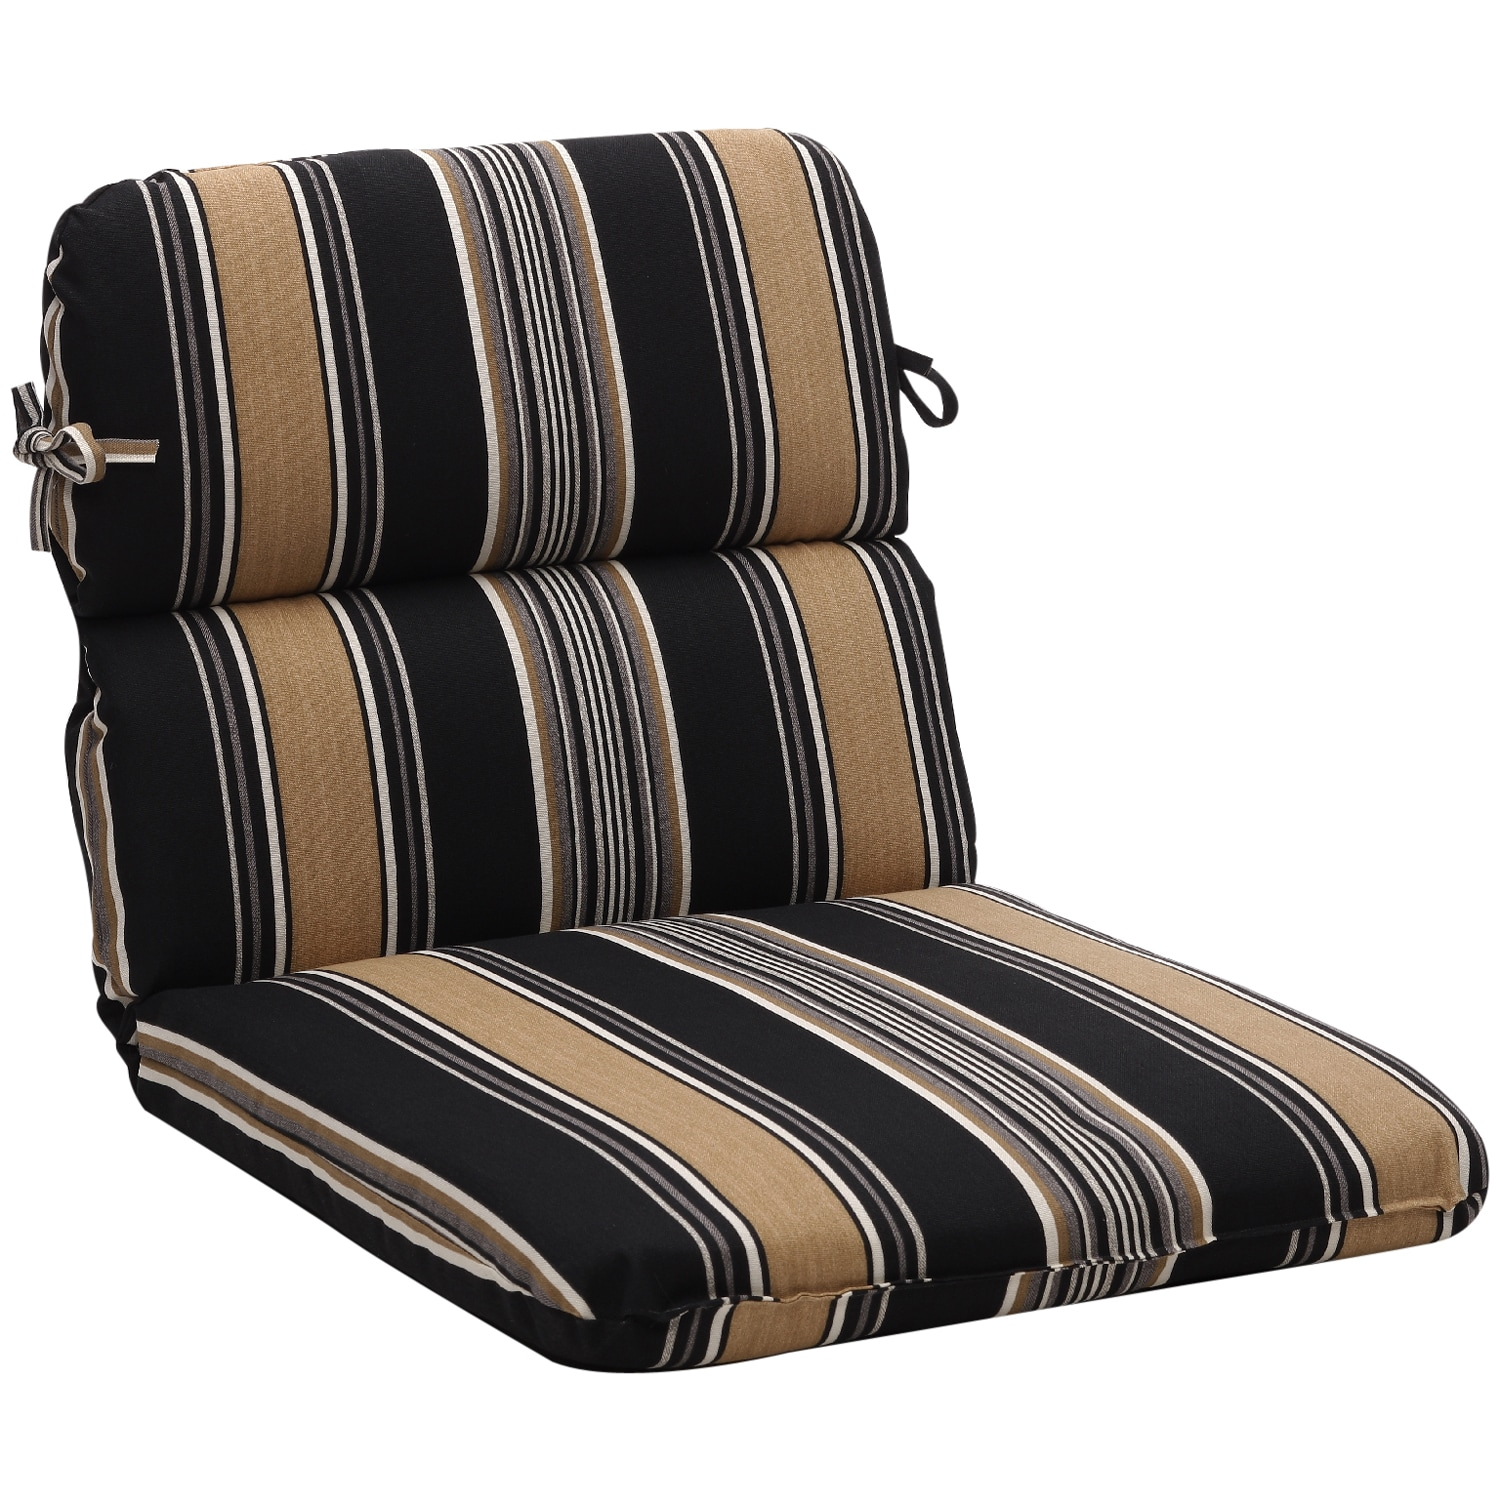 black chair pads old wooden dining chairs for sale rounded tan stripe outdoor cushion free